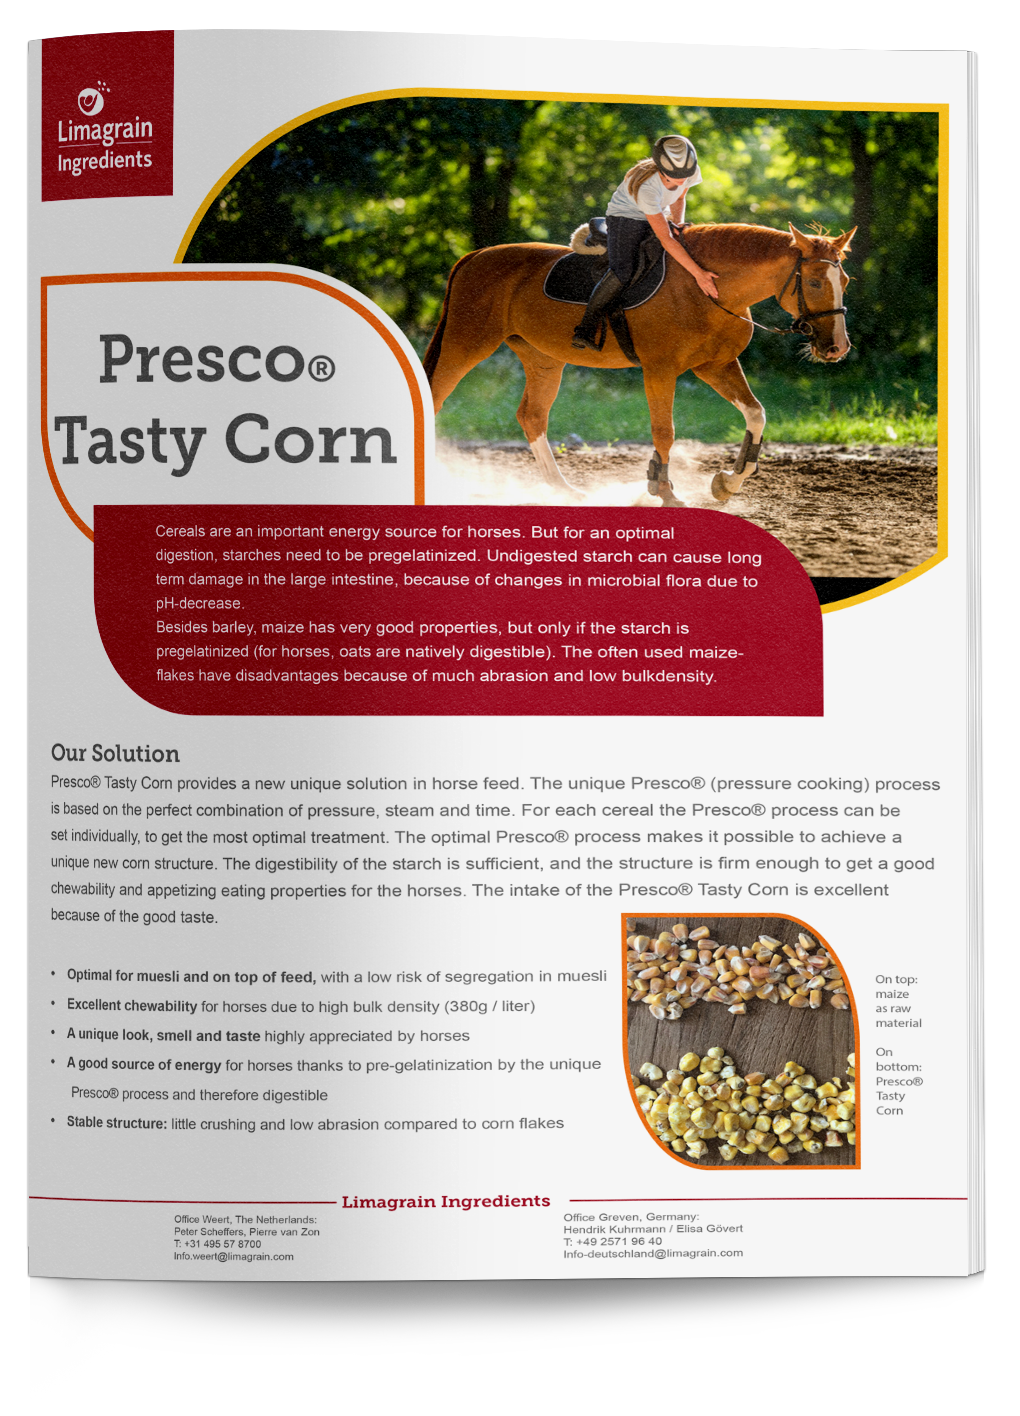 0402_Presco_tasty_corn_EN